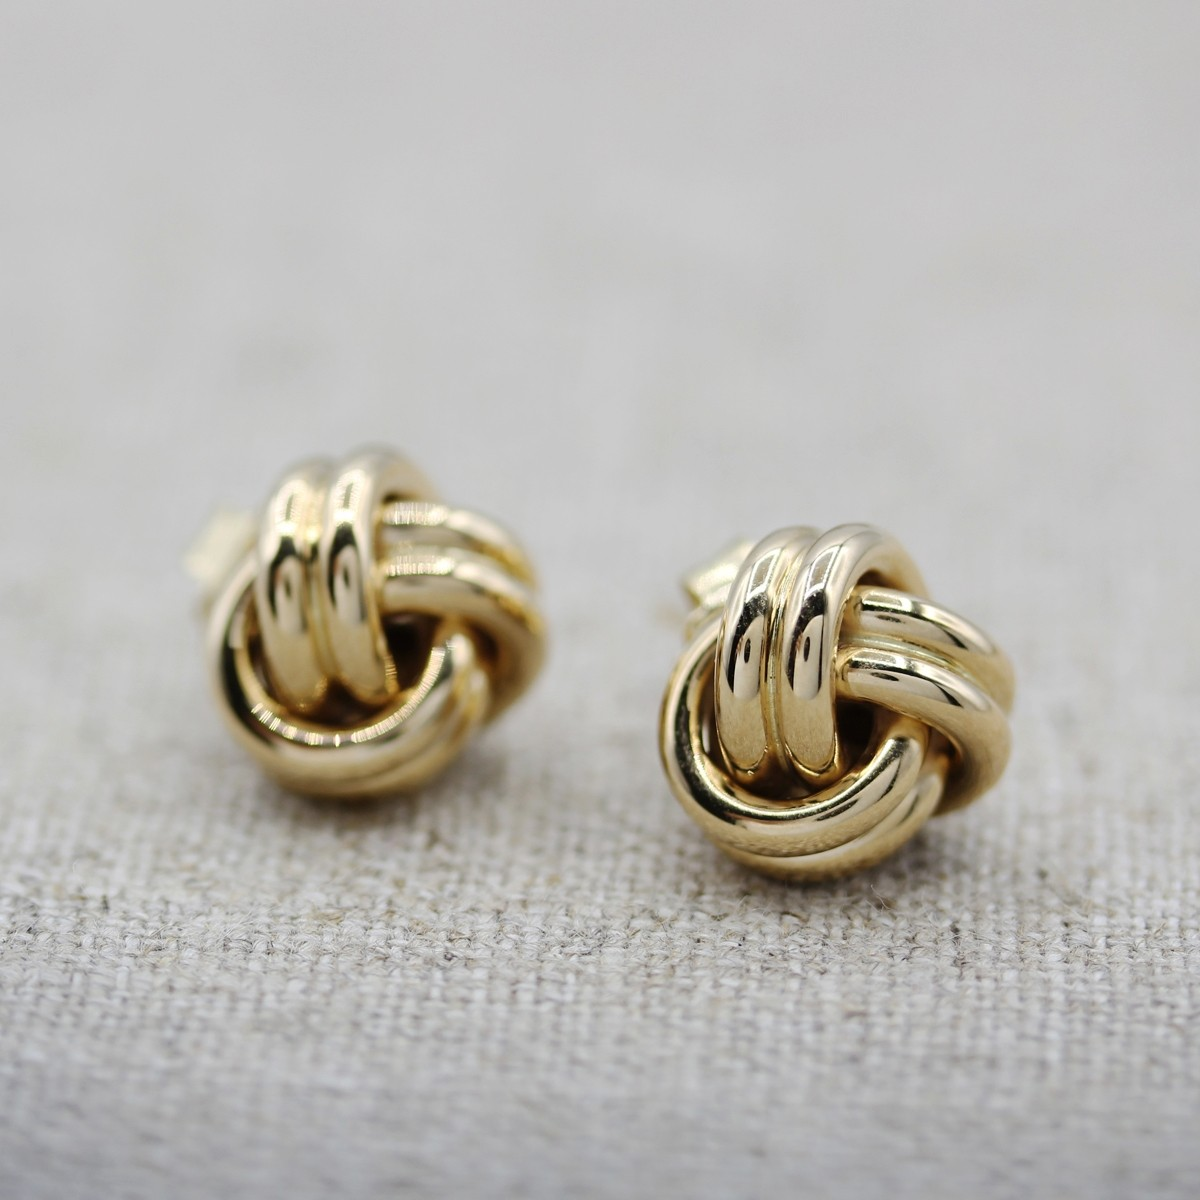 VINTAGE 14K YELLOW GOLD BOW KNOT EARRING STUDS